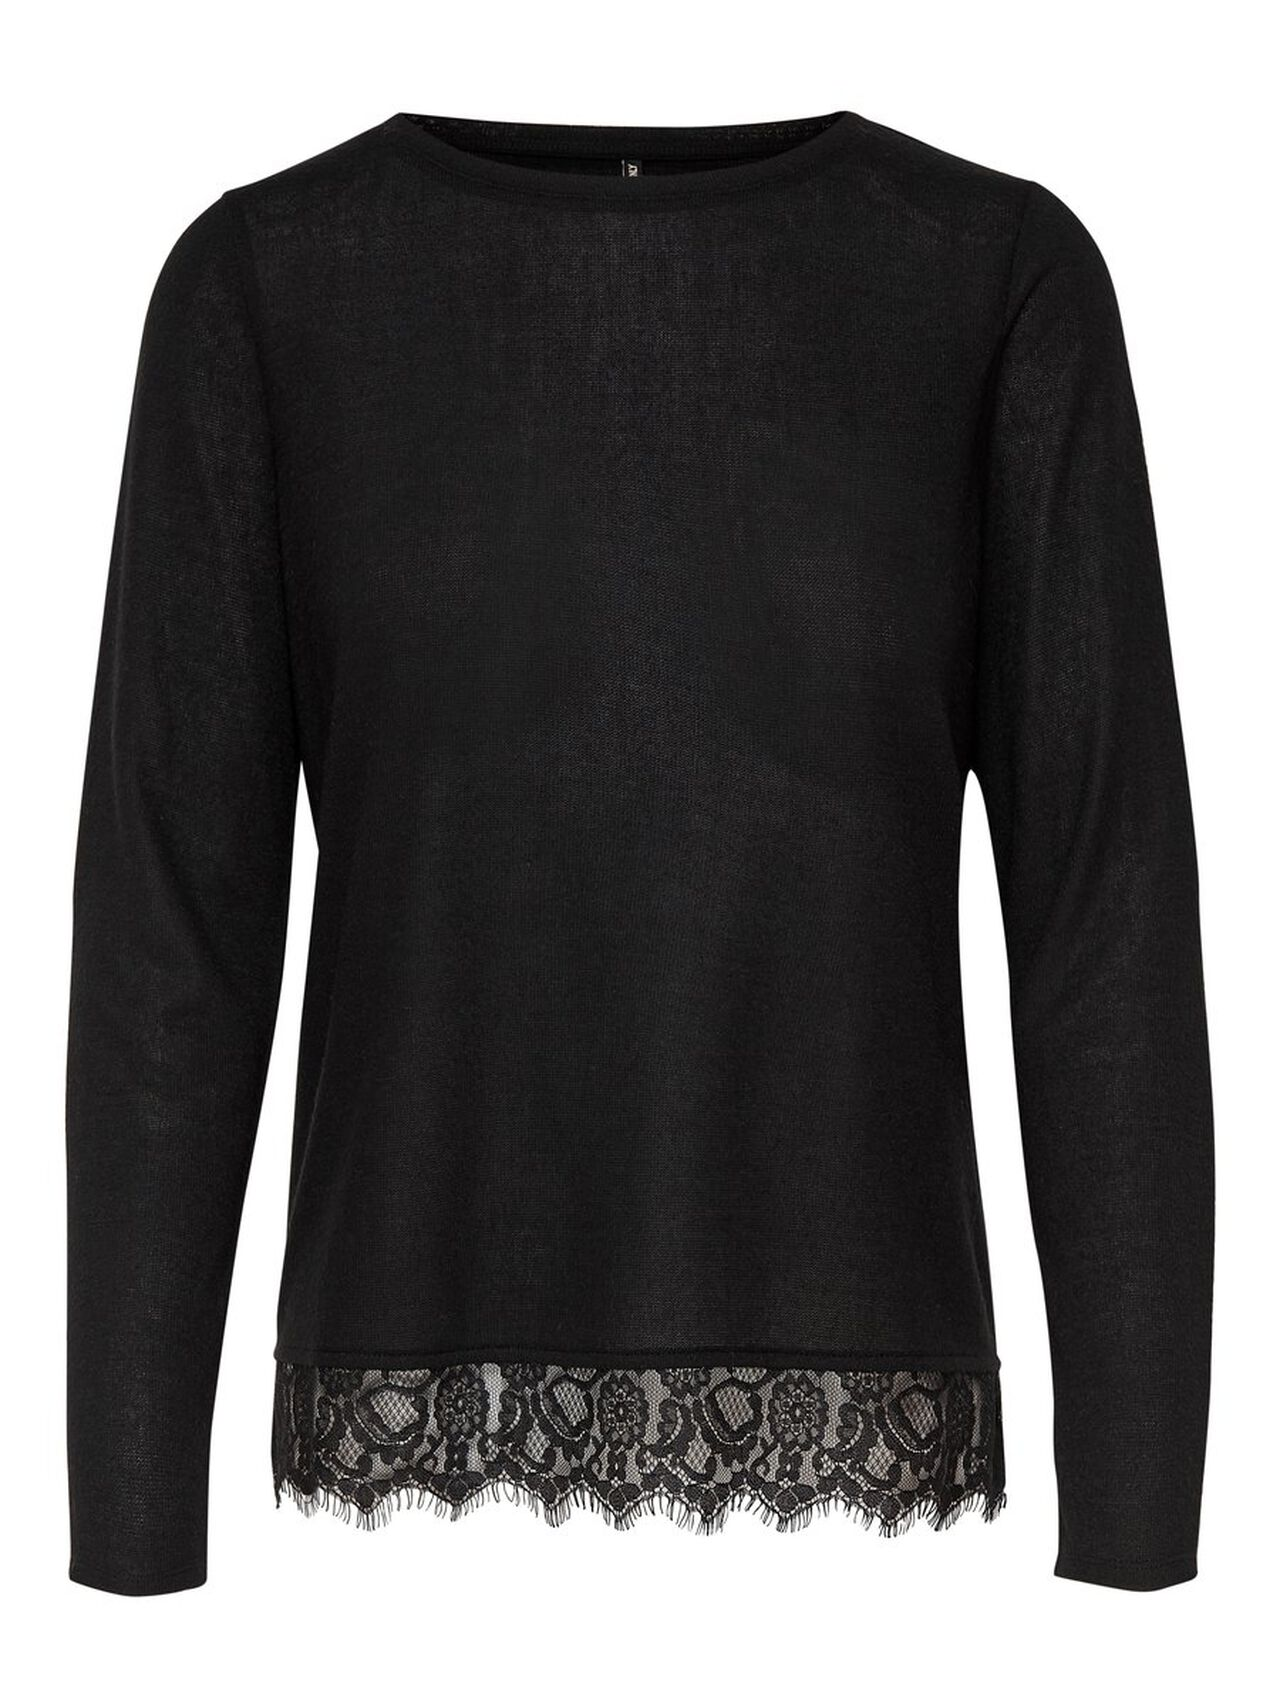 ONLY Lace Detail Long Sleeved Top Women Black